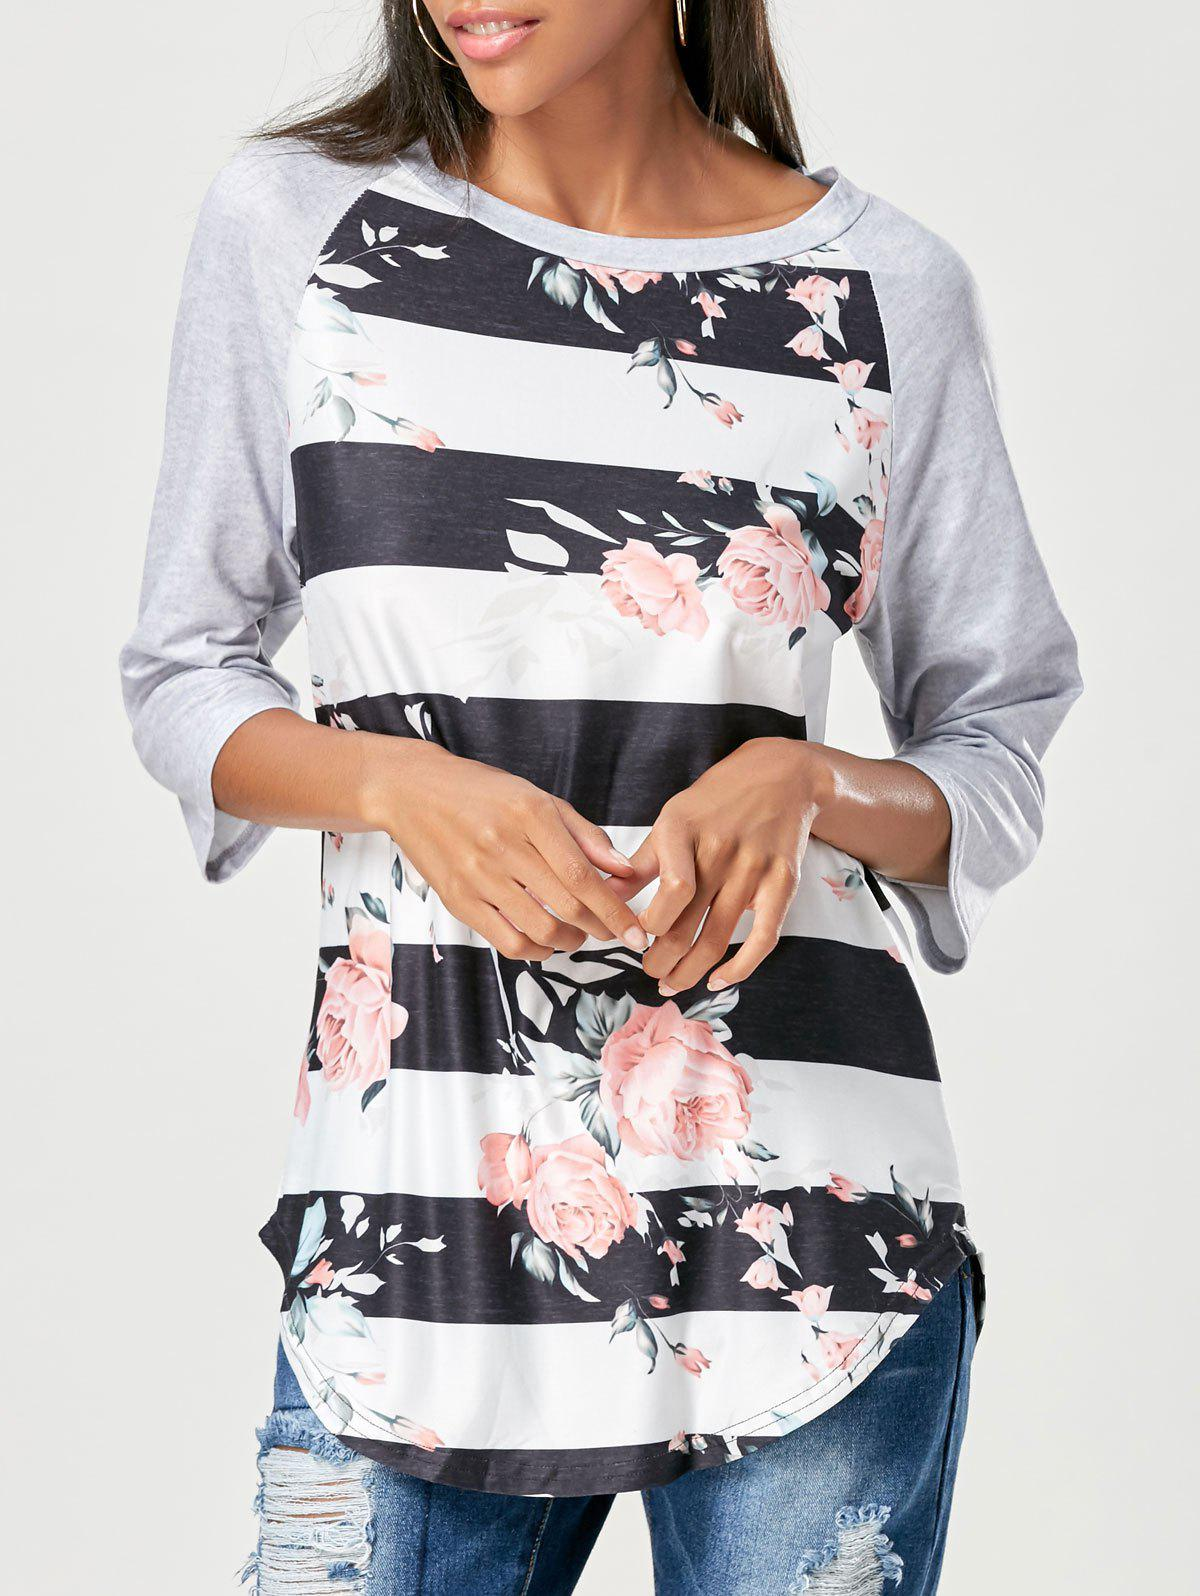 Raglan Sleeve Floral Striped T-shirtWOMEN<br><br>Size: XL; Color: BLACK; Material: Polyester; Shirt Length: Regular; Sleeve Length: Three Quarter; Collar: Round Neck; Style: Fashion; Season: Fall,Spring; Pattern Type: Floral,Striped; Weight: 0.2200kg; Package Contents: 1 x T-shirt;